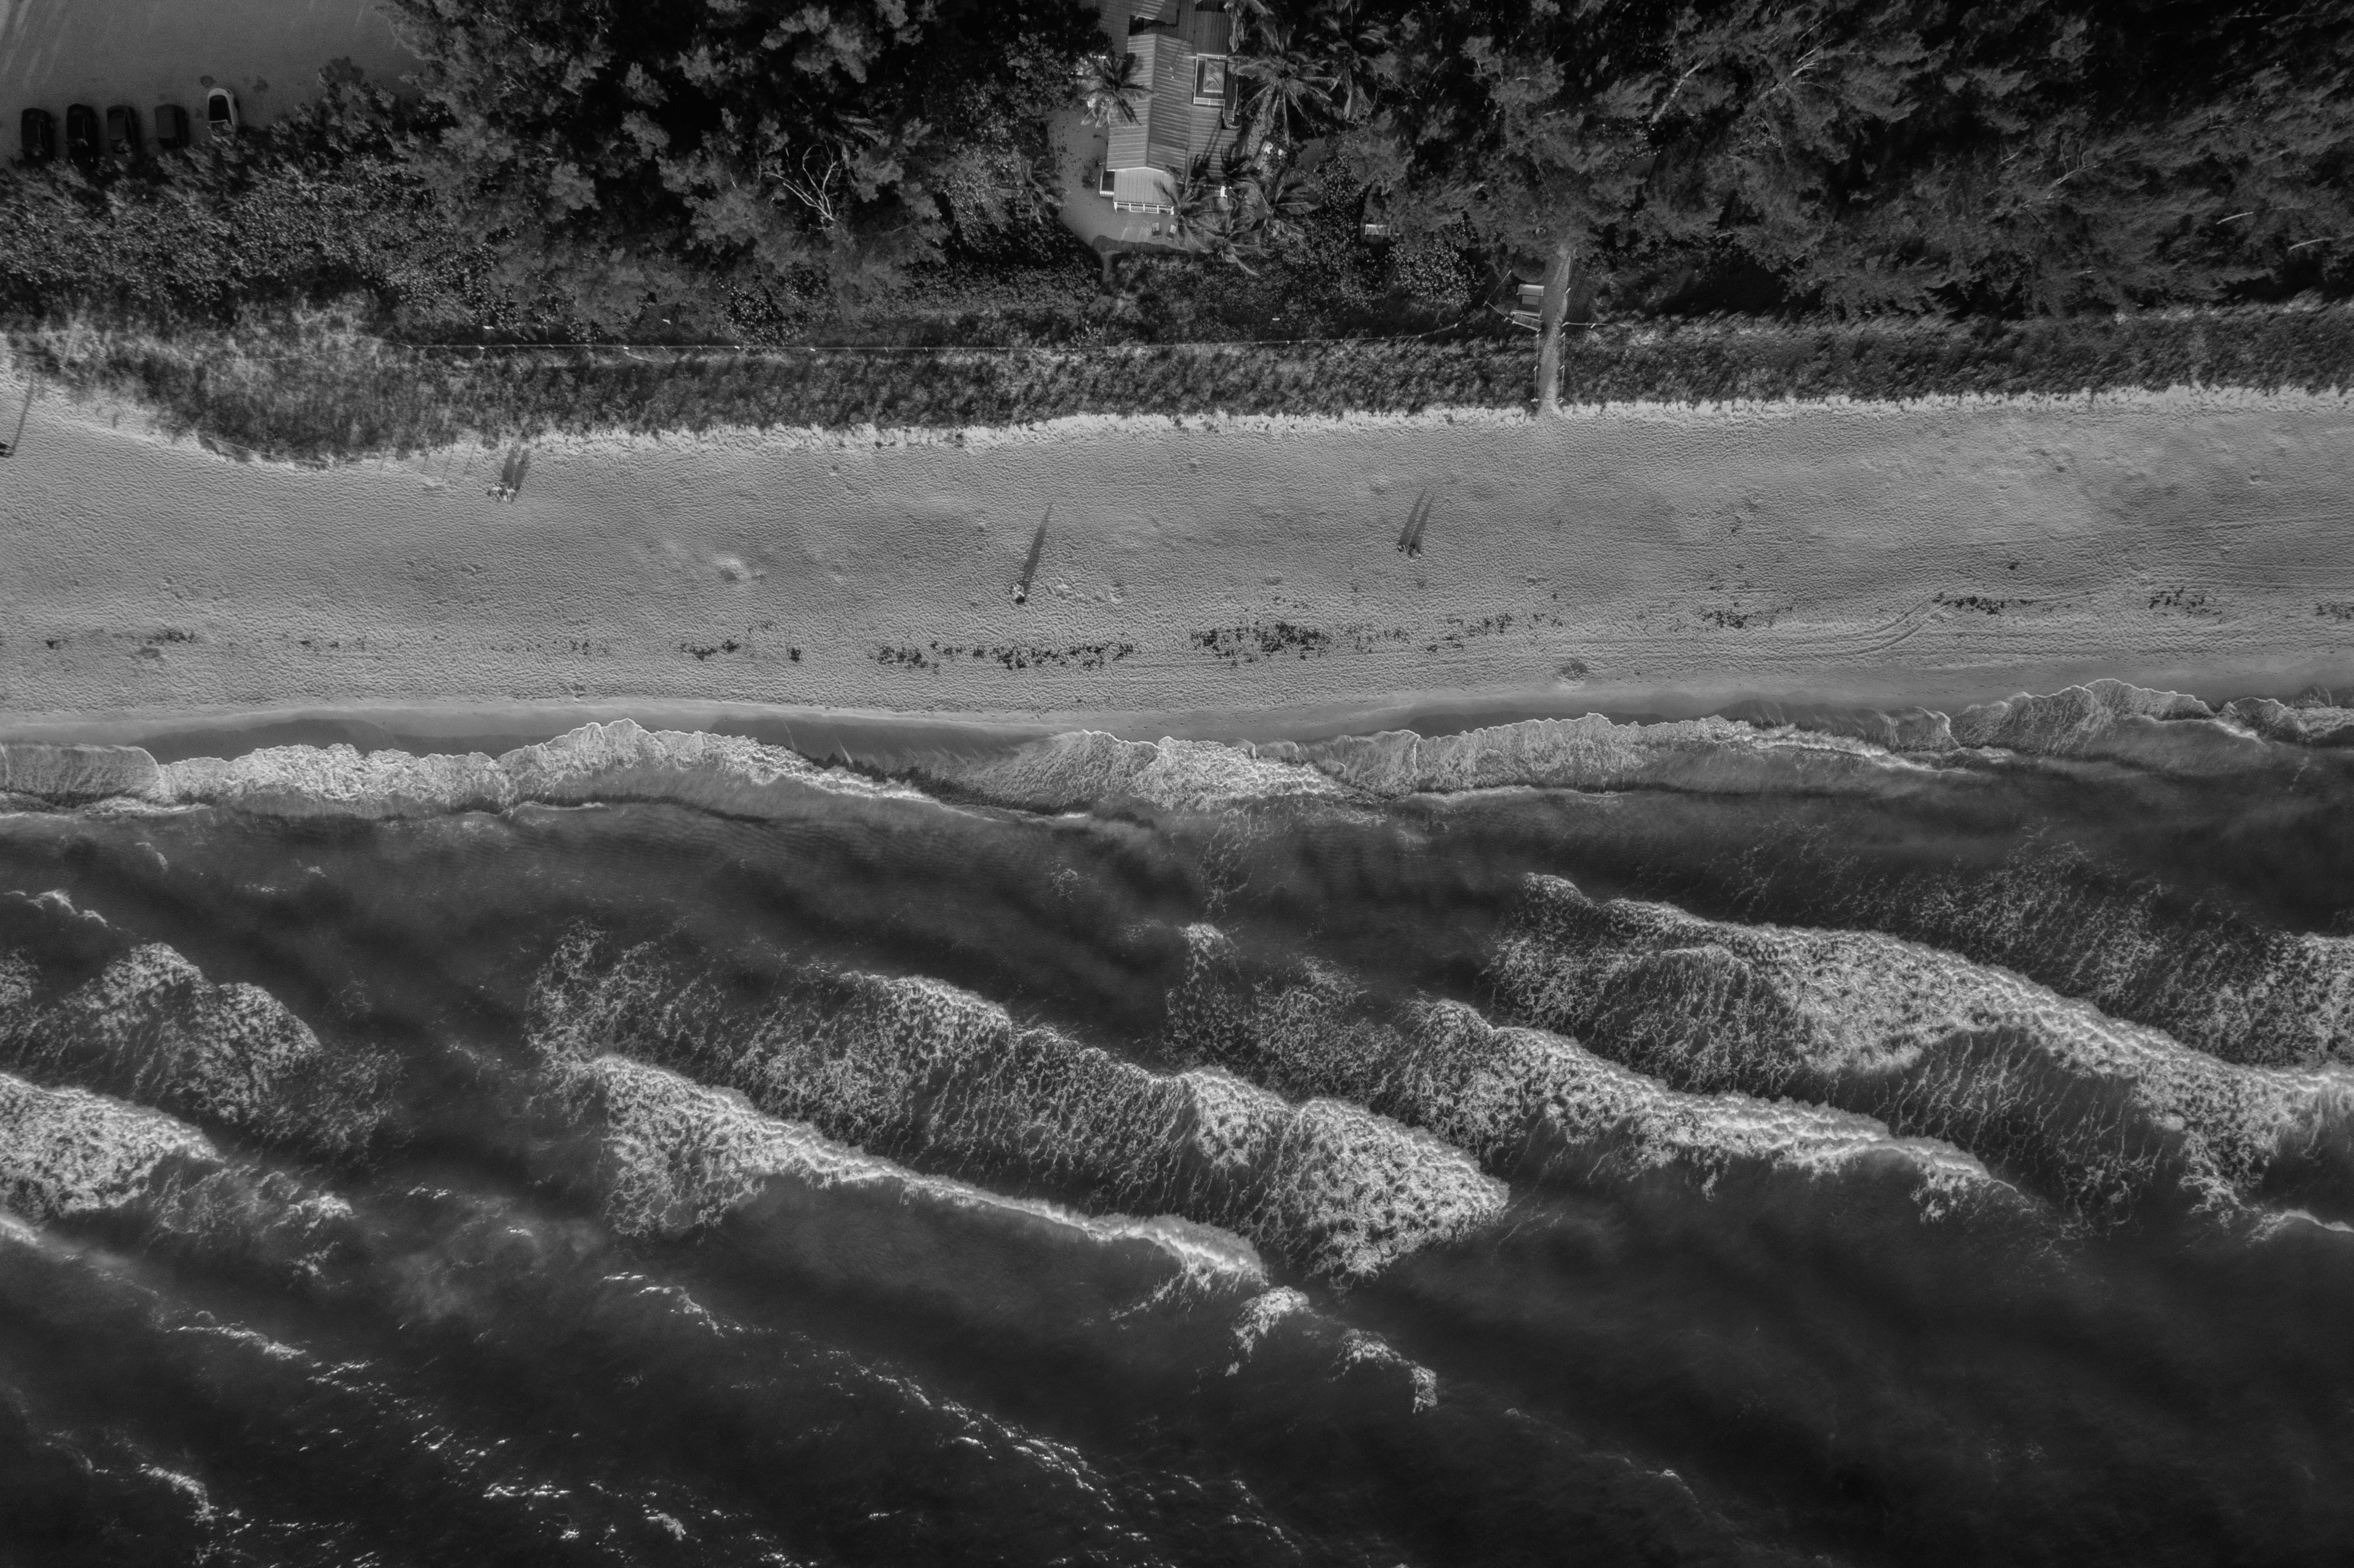 Bird's-view and Grayscale Photography of Body of Water